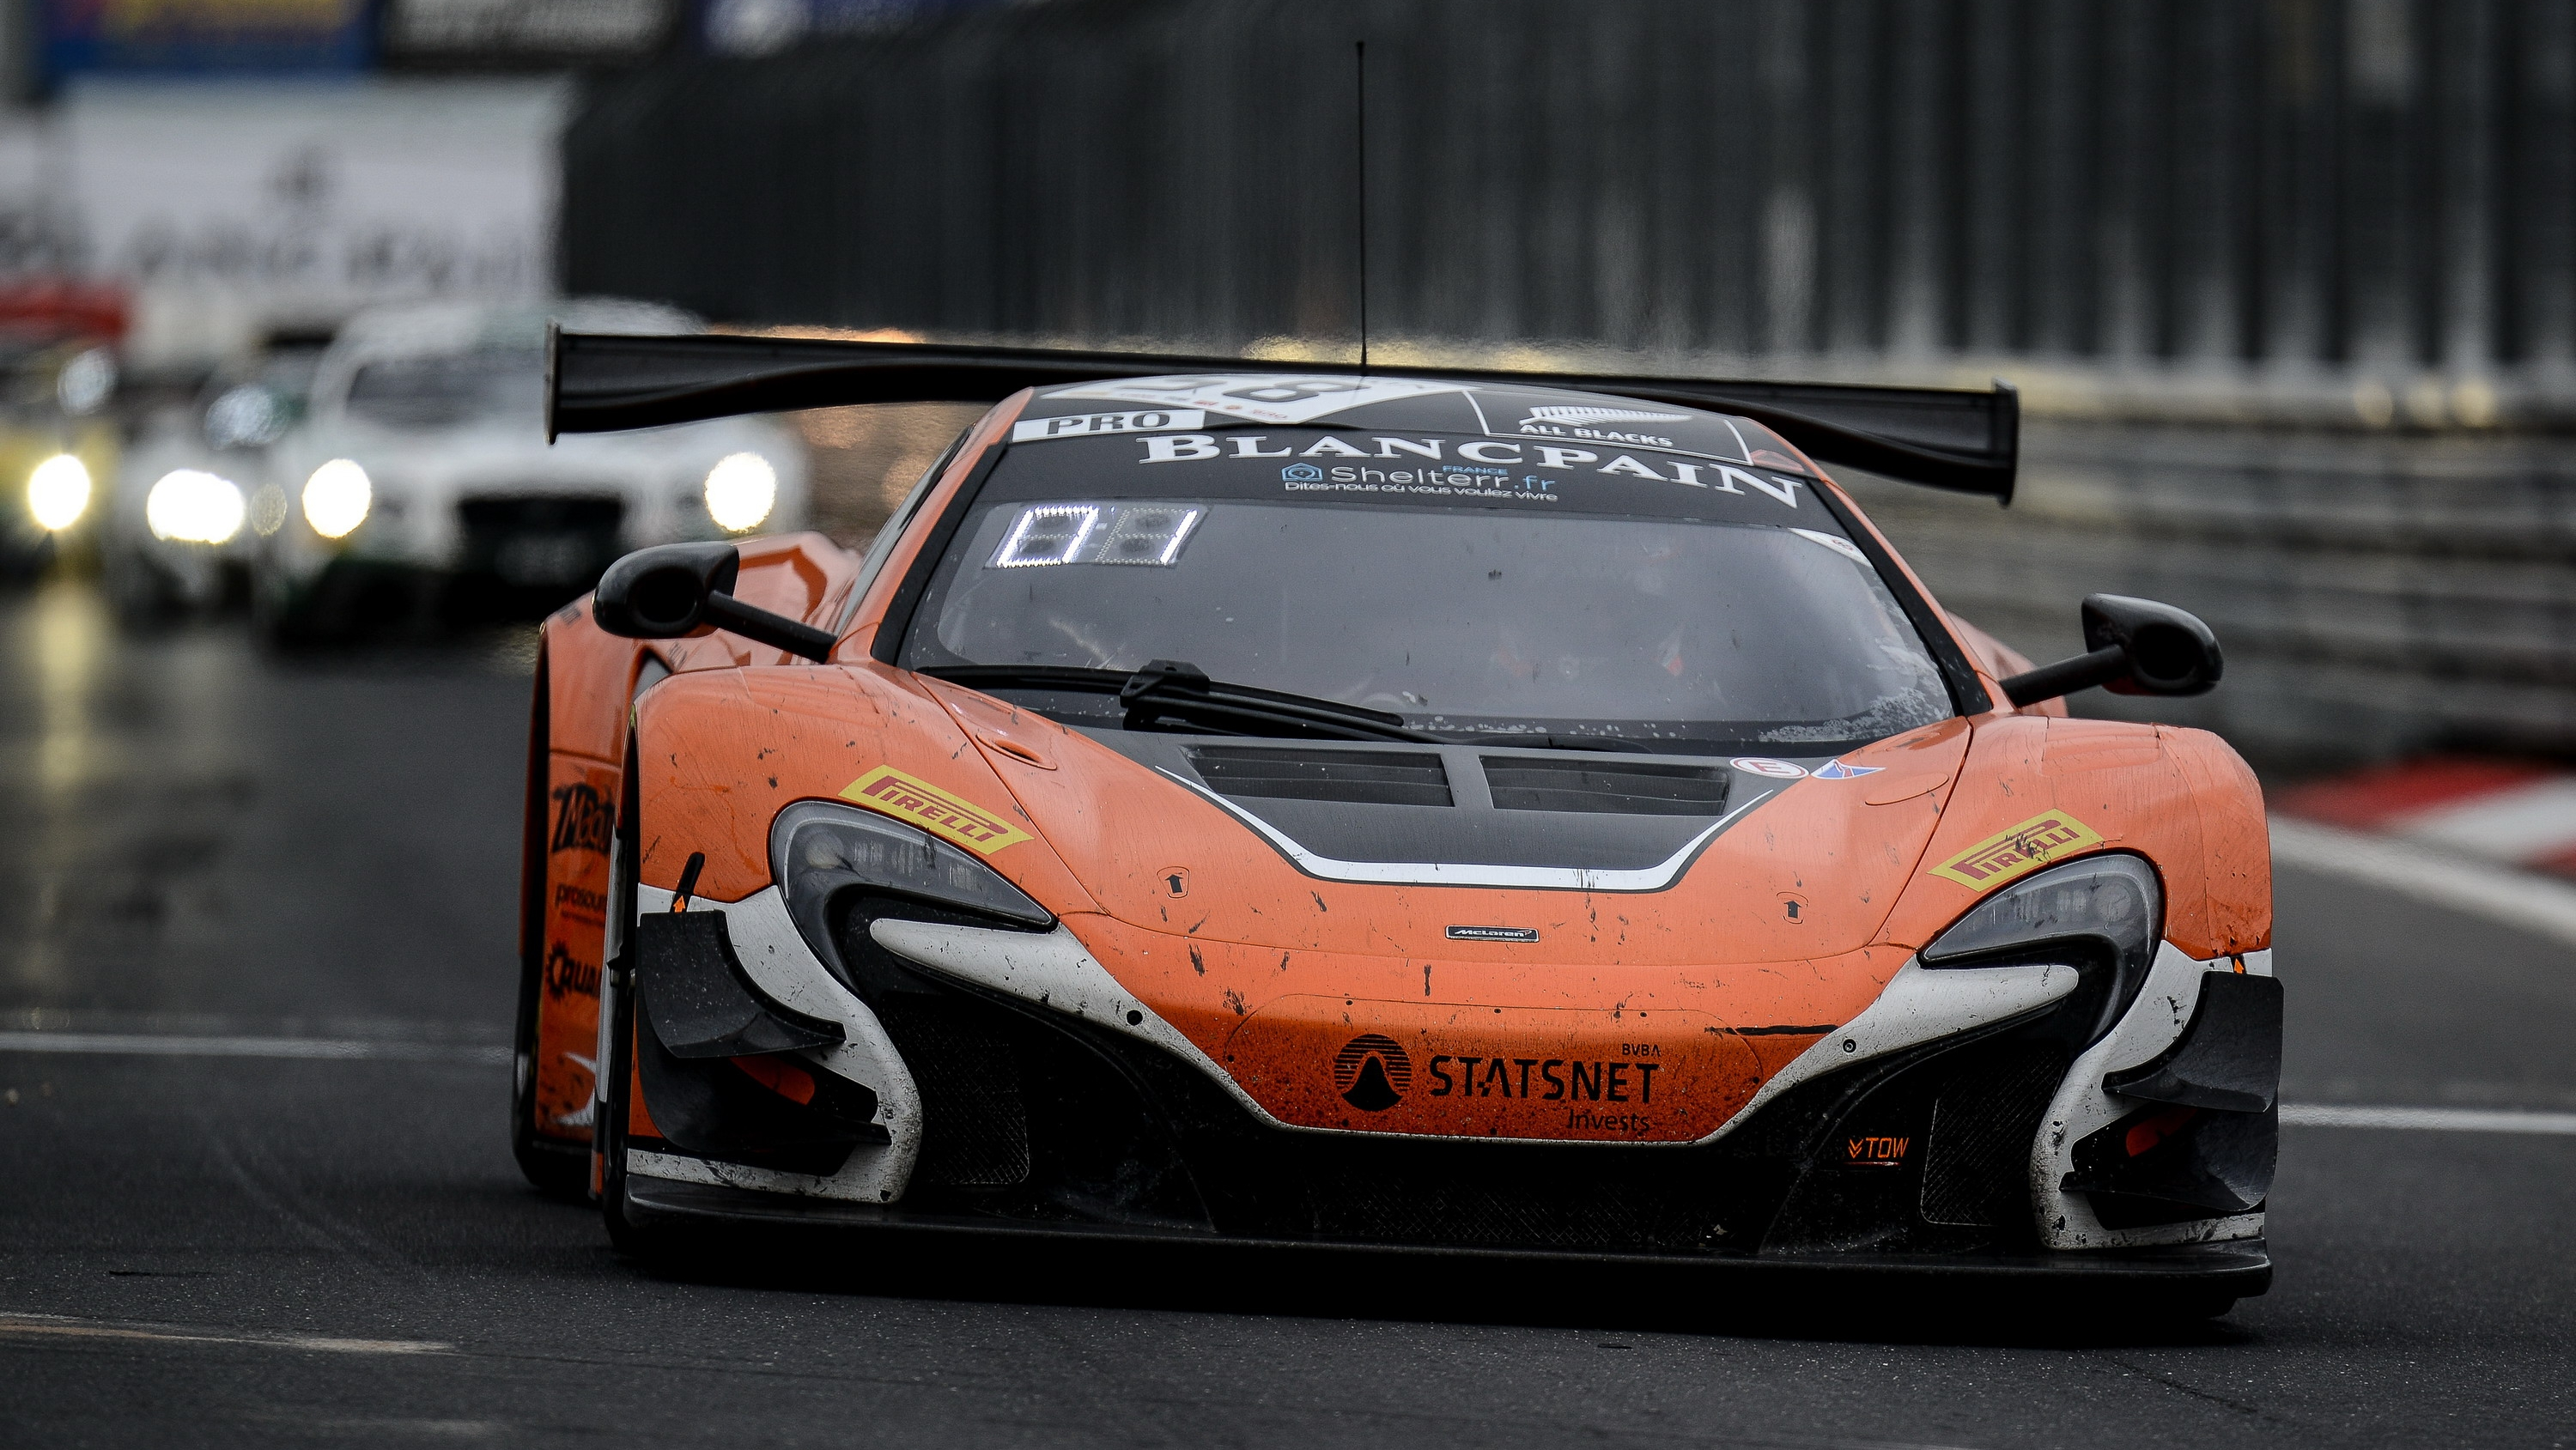 mclaren 650s gt3 wins at blancpain endurance series top. Black Bedroom Furniture Sets. Home Design Ideas